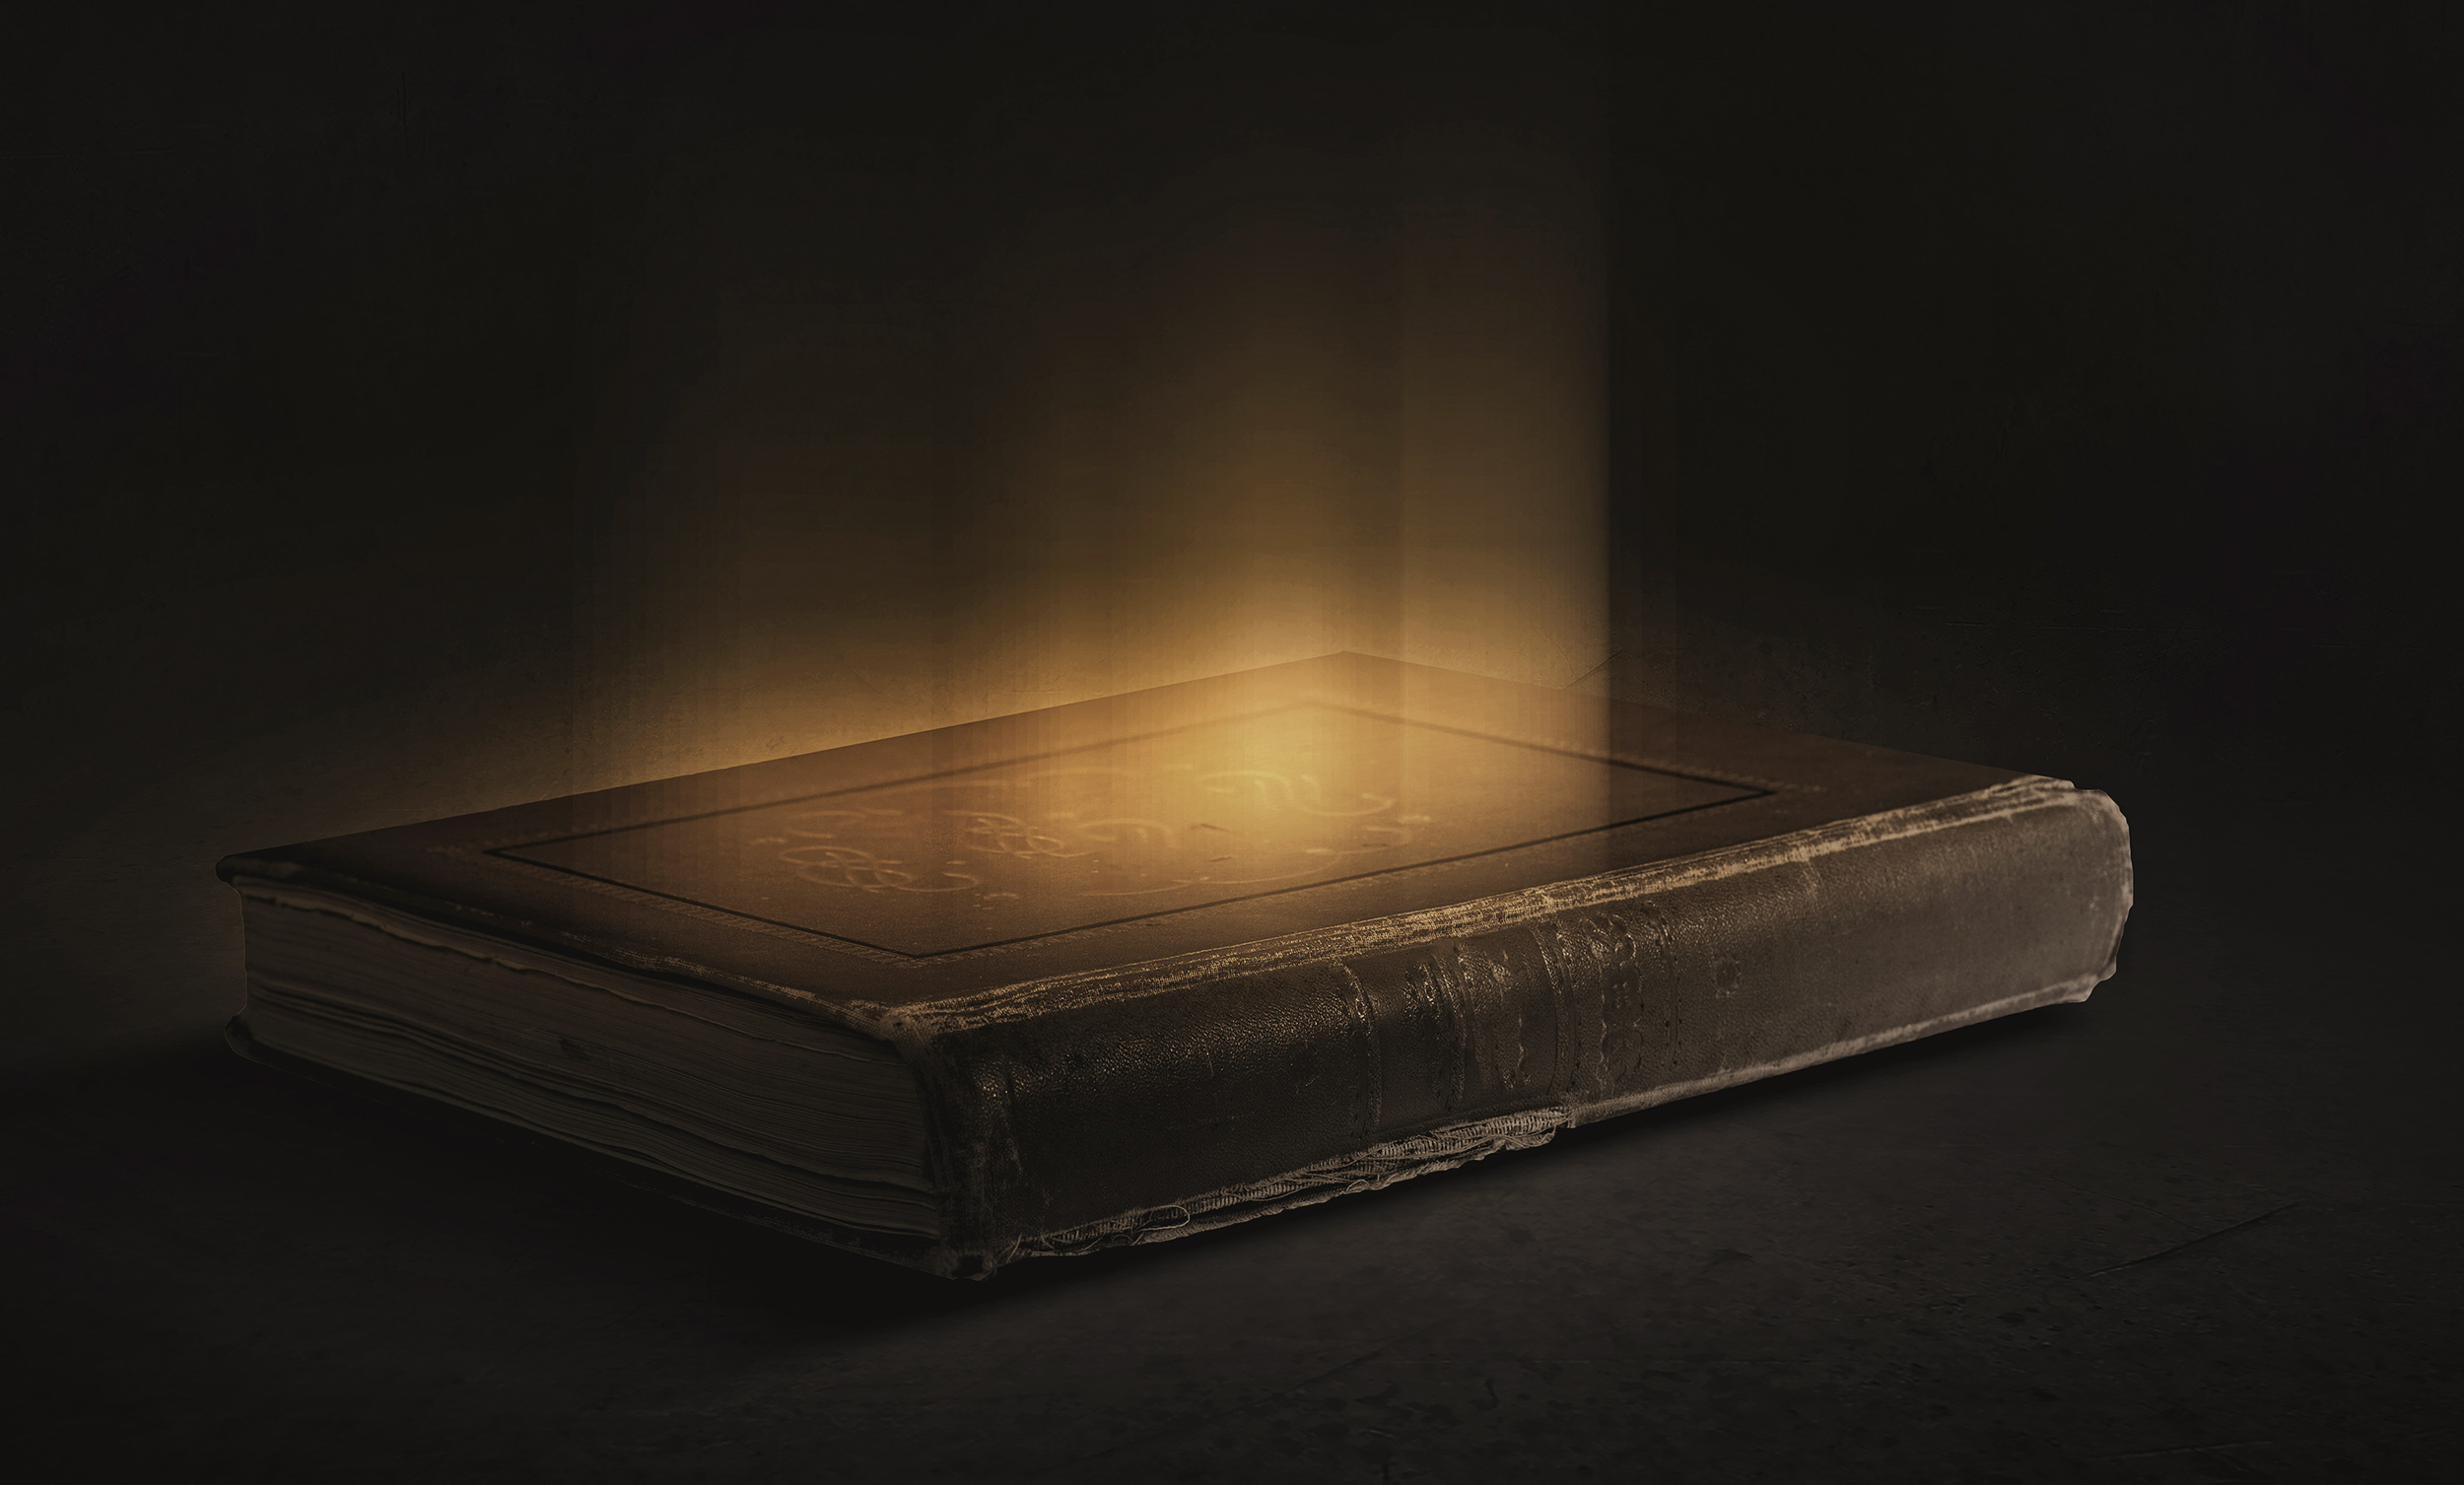 Glowing Book